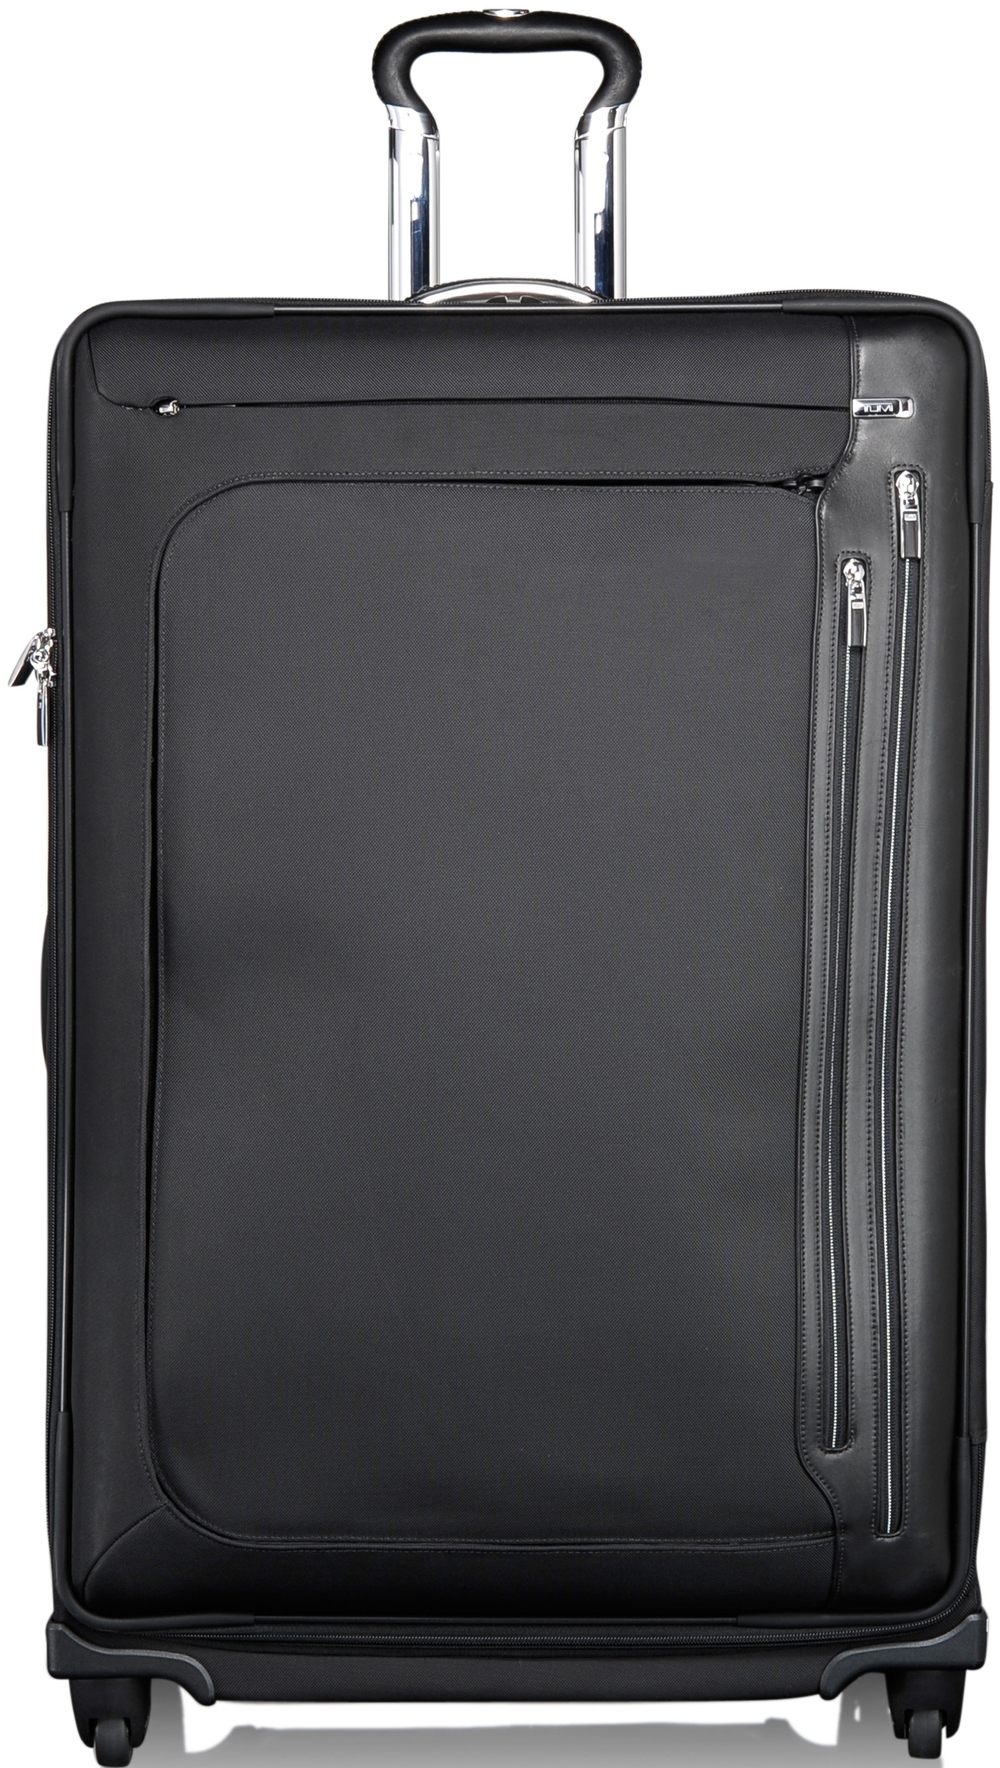 Tumi Zurich 4-Wheeled Expandable Fortnight Trip Packing Case, $1,495